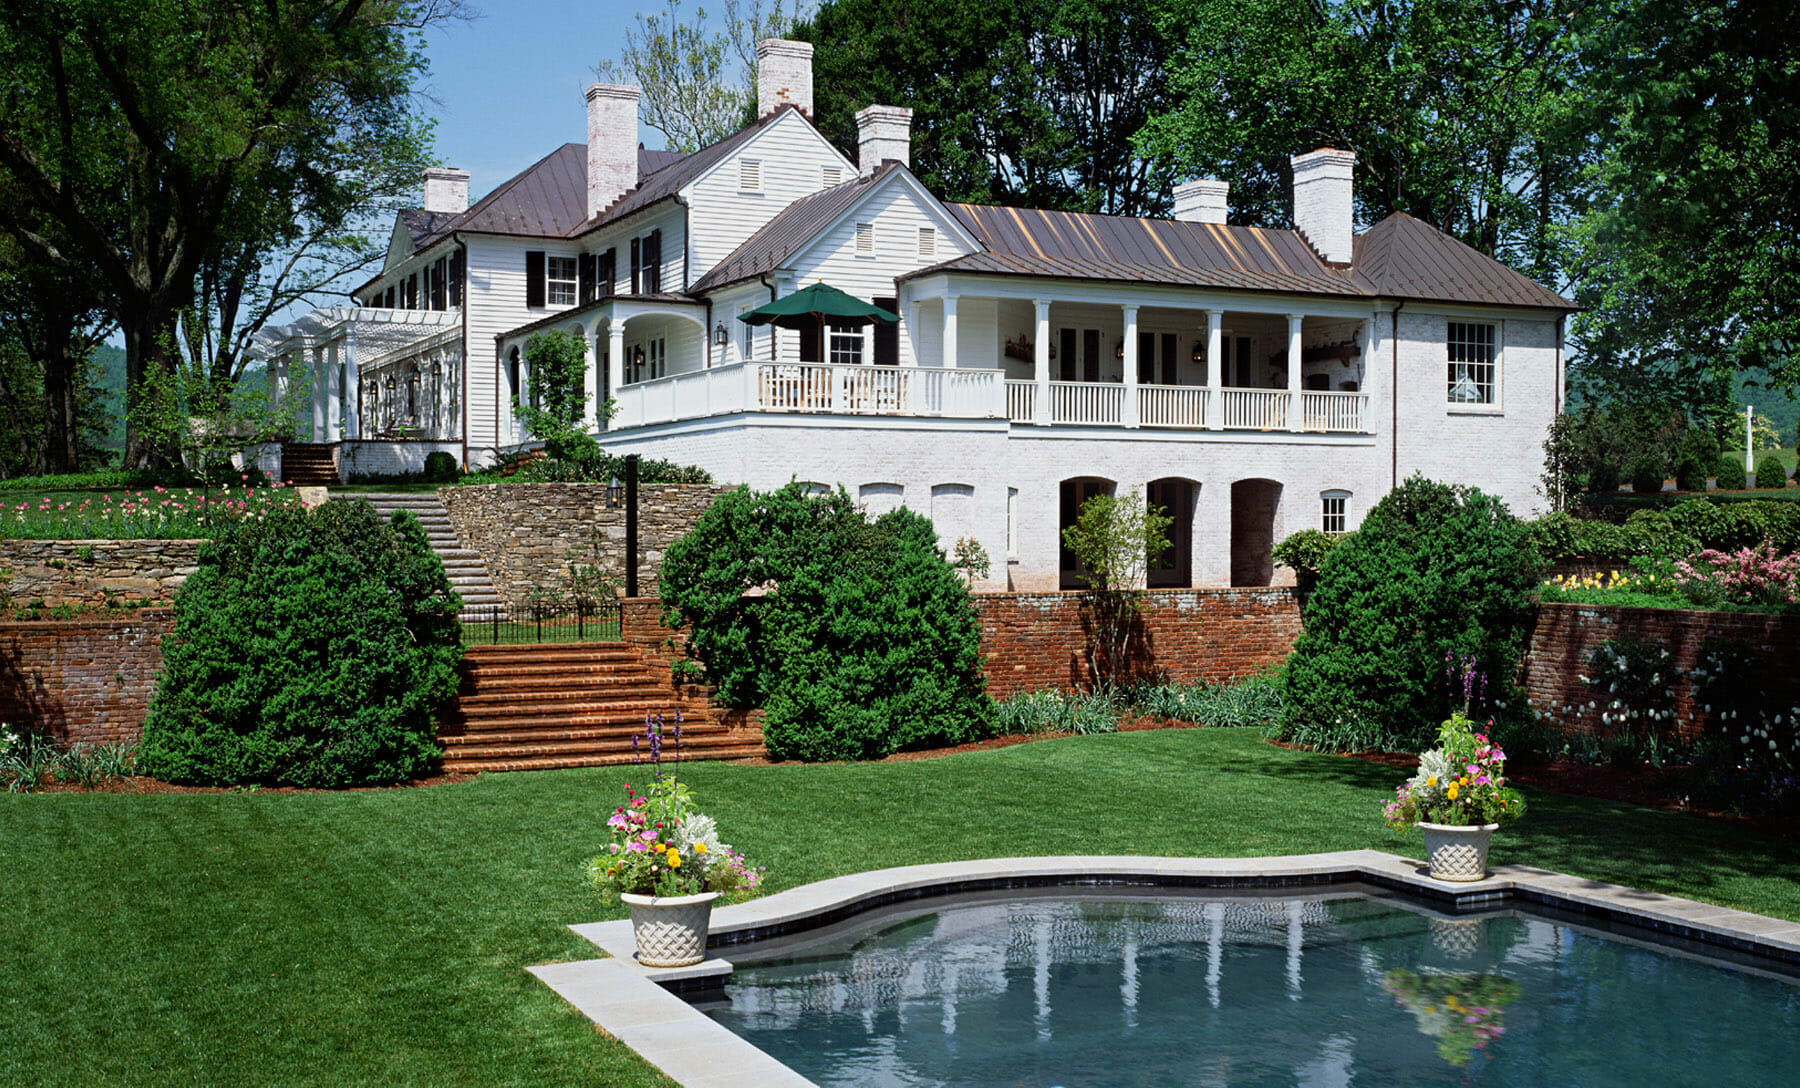 GME Builders specializes in high-end residential construction in Charlottesville and Albemarle, such as this new home with a terraced garden and swimming pool